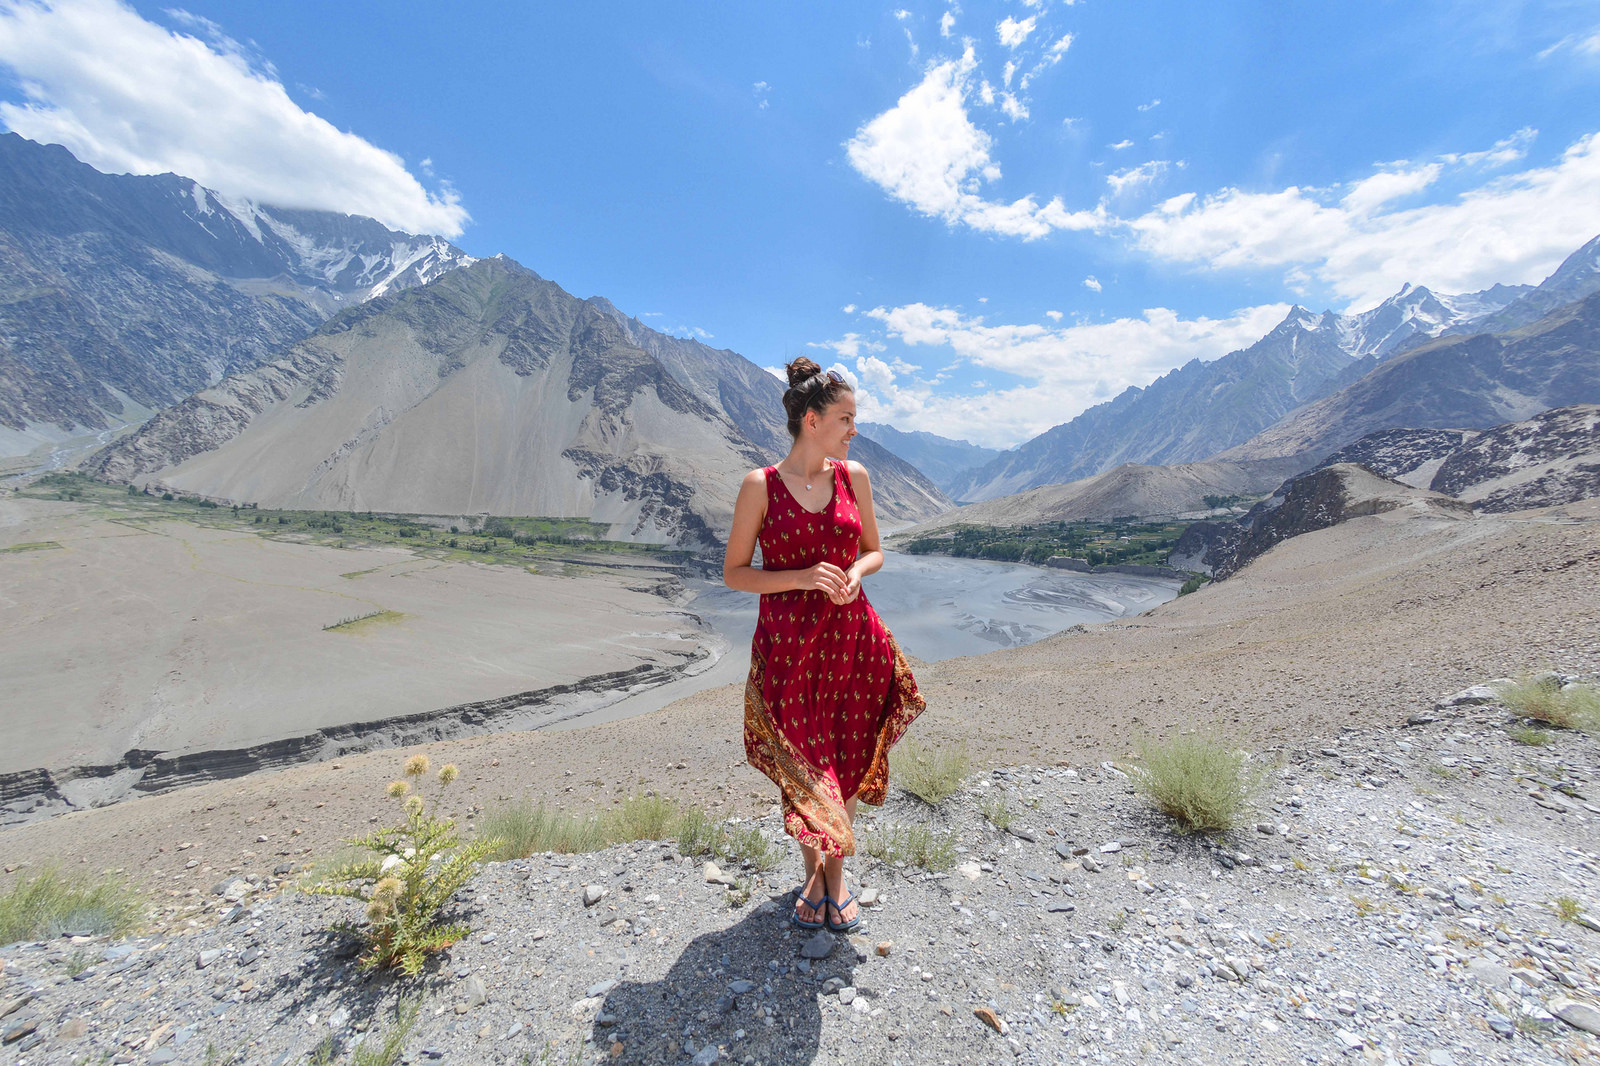 tourism in pakistan Tourism in pakistan introduction if pakistan is popular in the world of tourism, it is because of the mountainous regions of the north the four mountain ranges of the hindukush, pamir, karakuram and the great himalaya form the densest concentration of high peaks in the world.